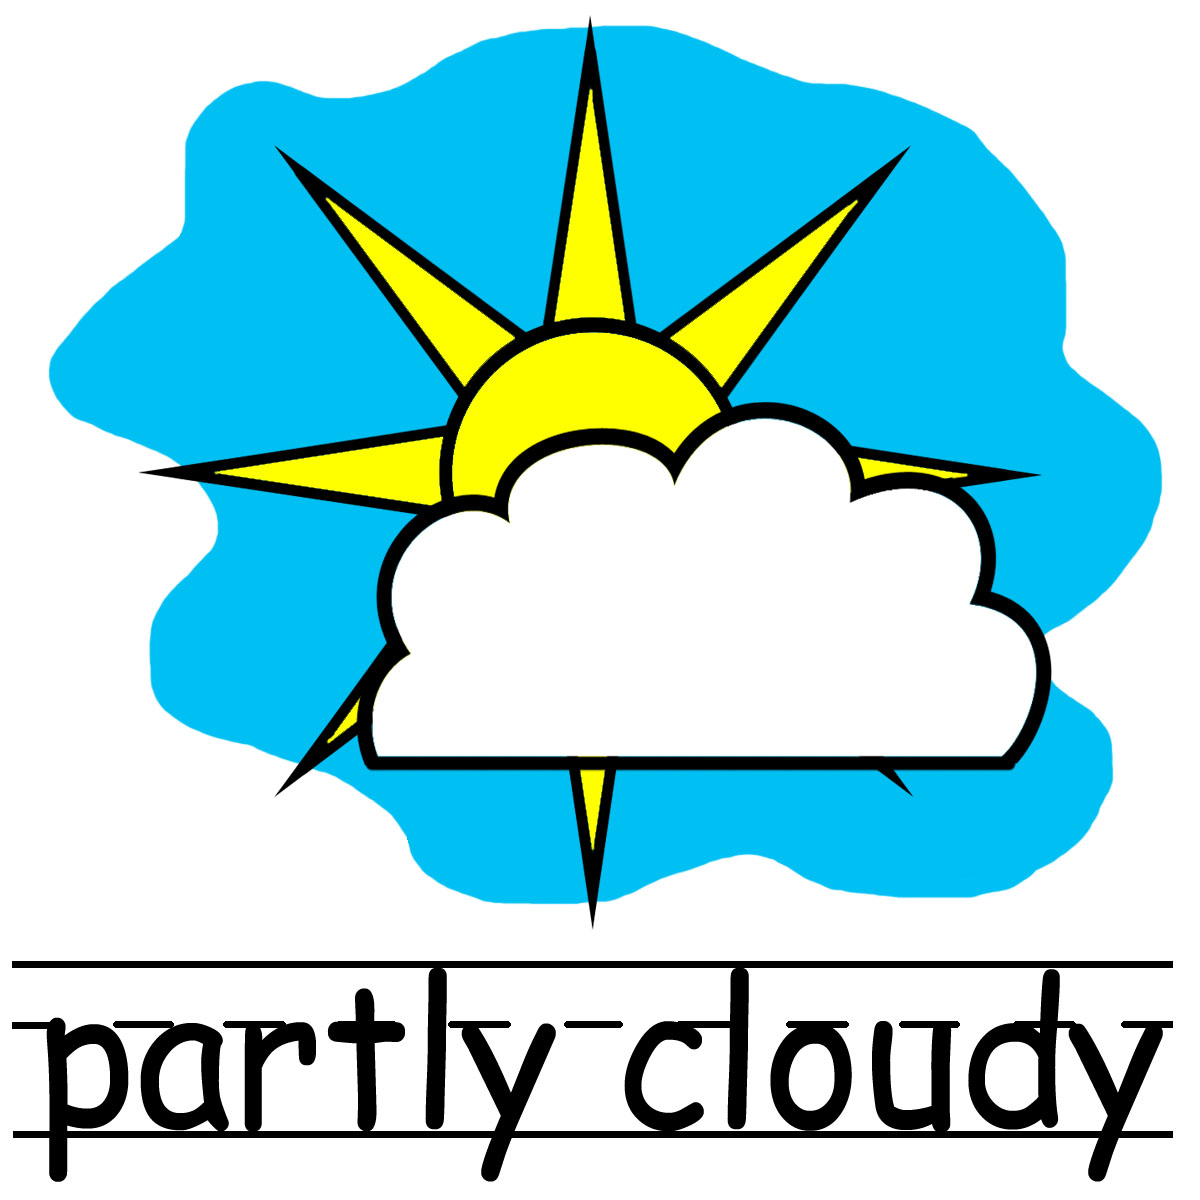 picture day clipart weather